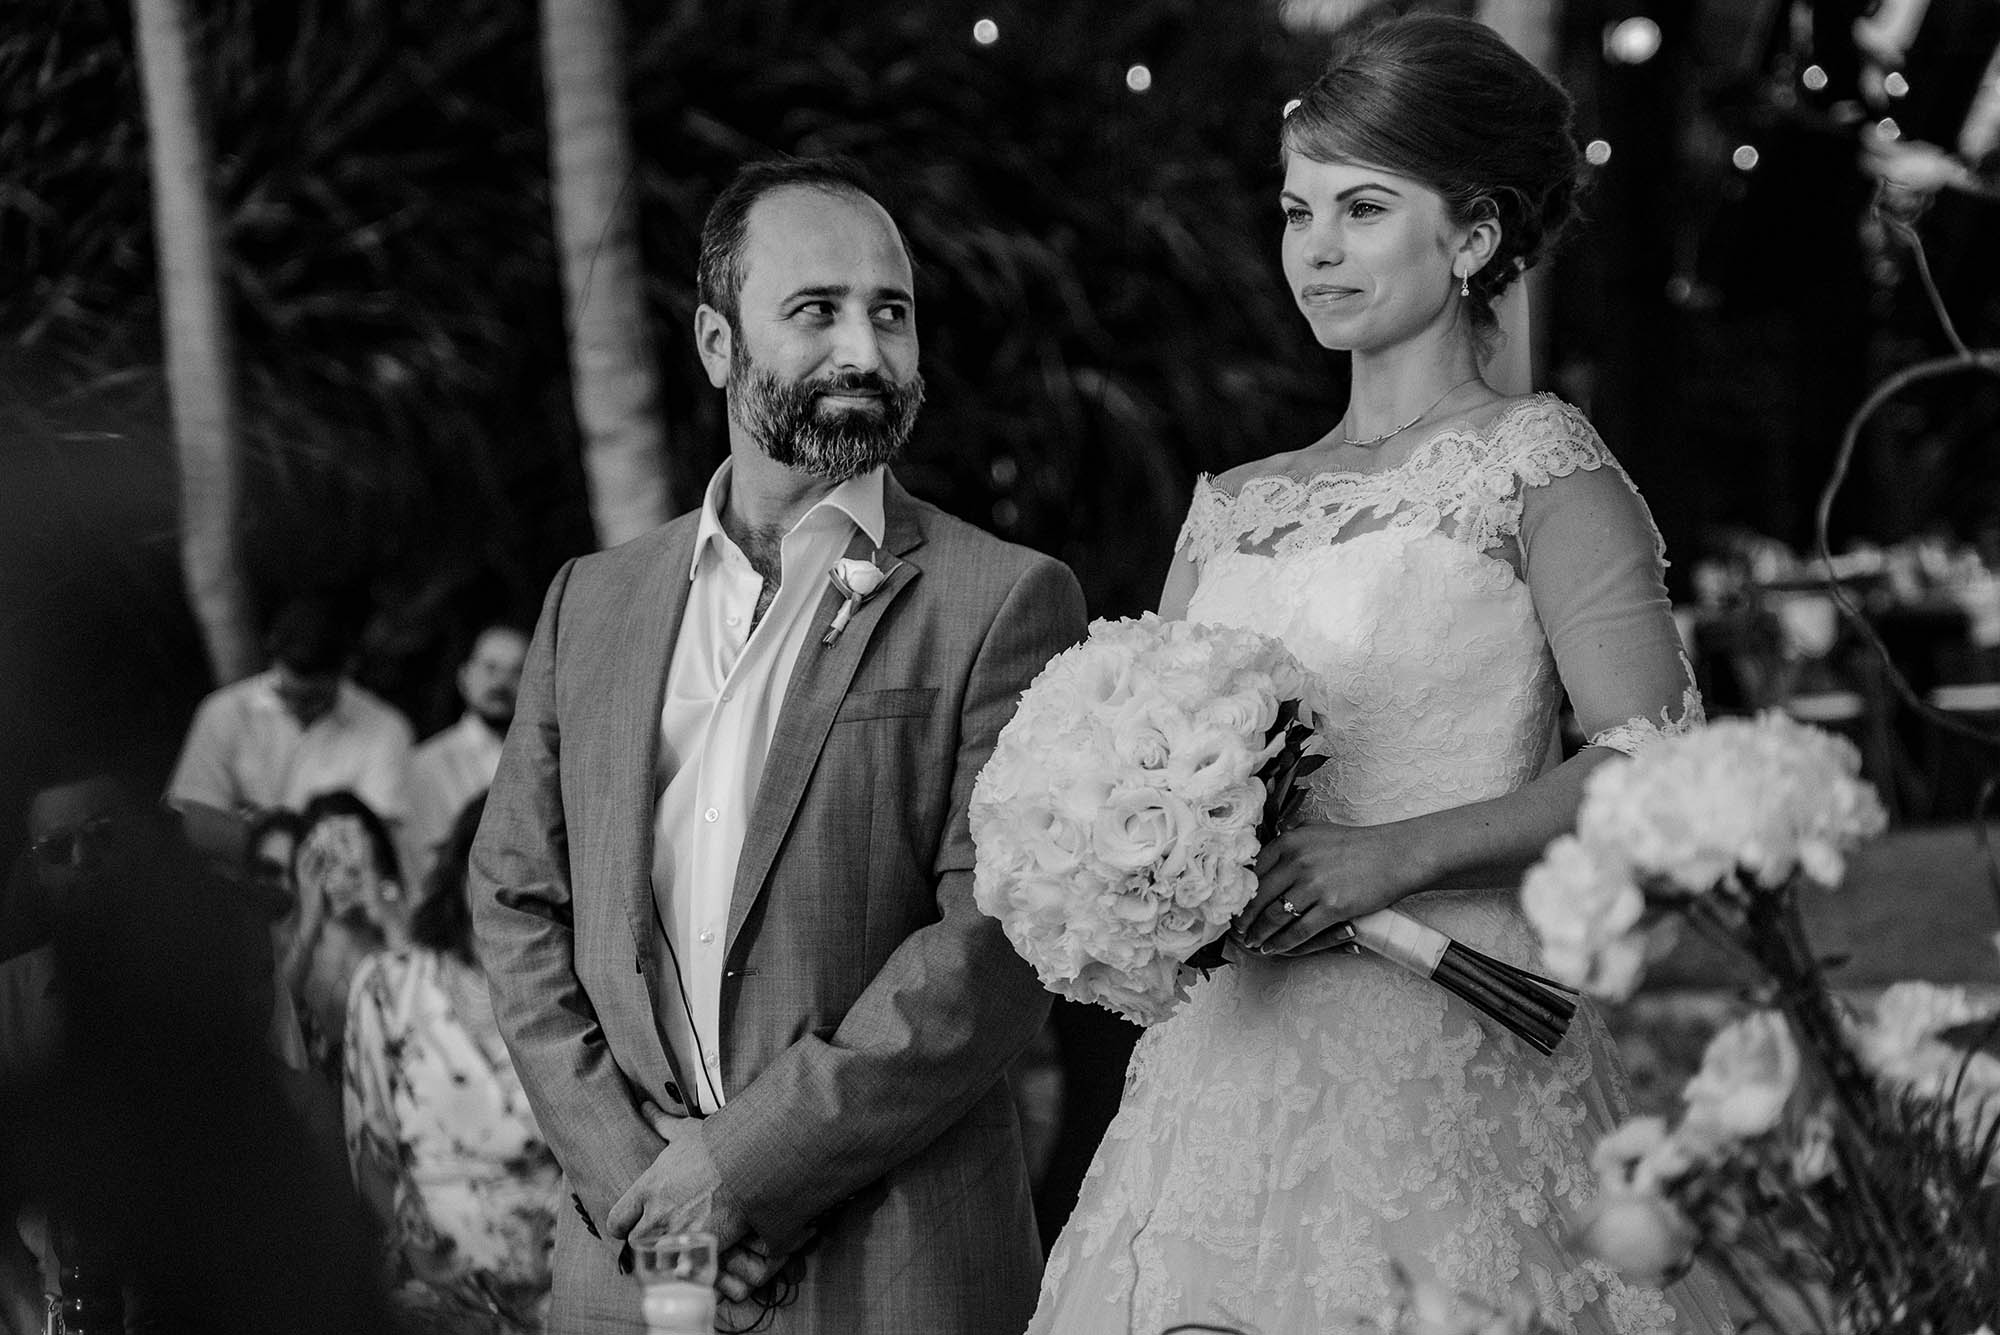 magali wedding photographer fotografo boda vallarta_25.jpg